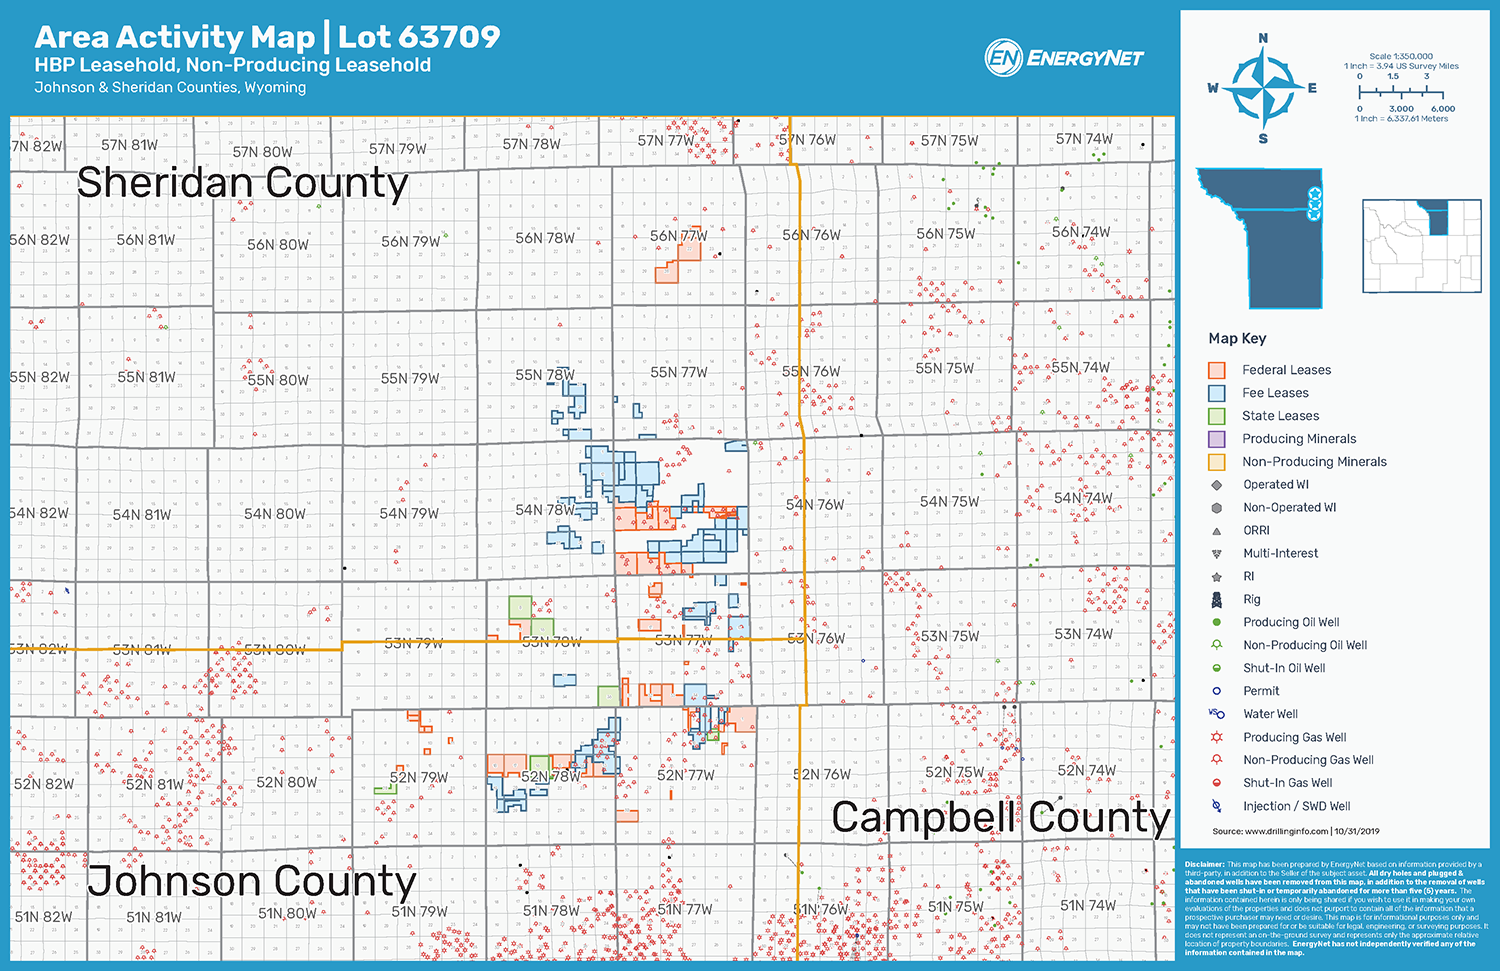 Lot 63709: Johnson and Sheridan Counties, Wyoming Asset Map (Source: EnergyNet)